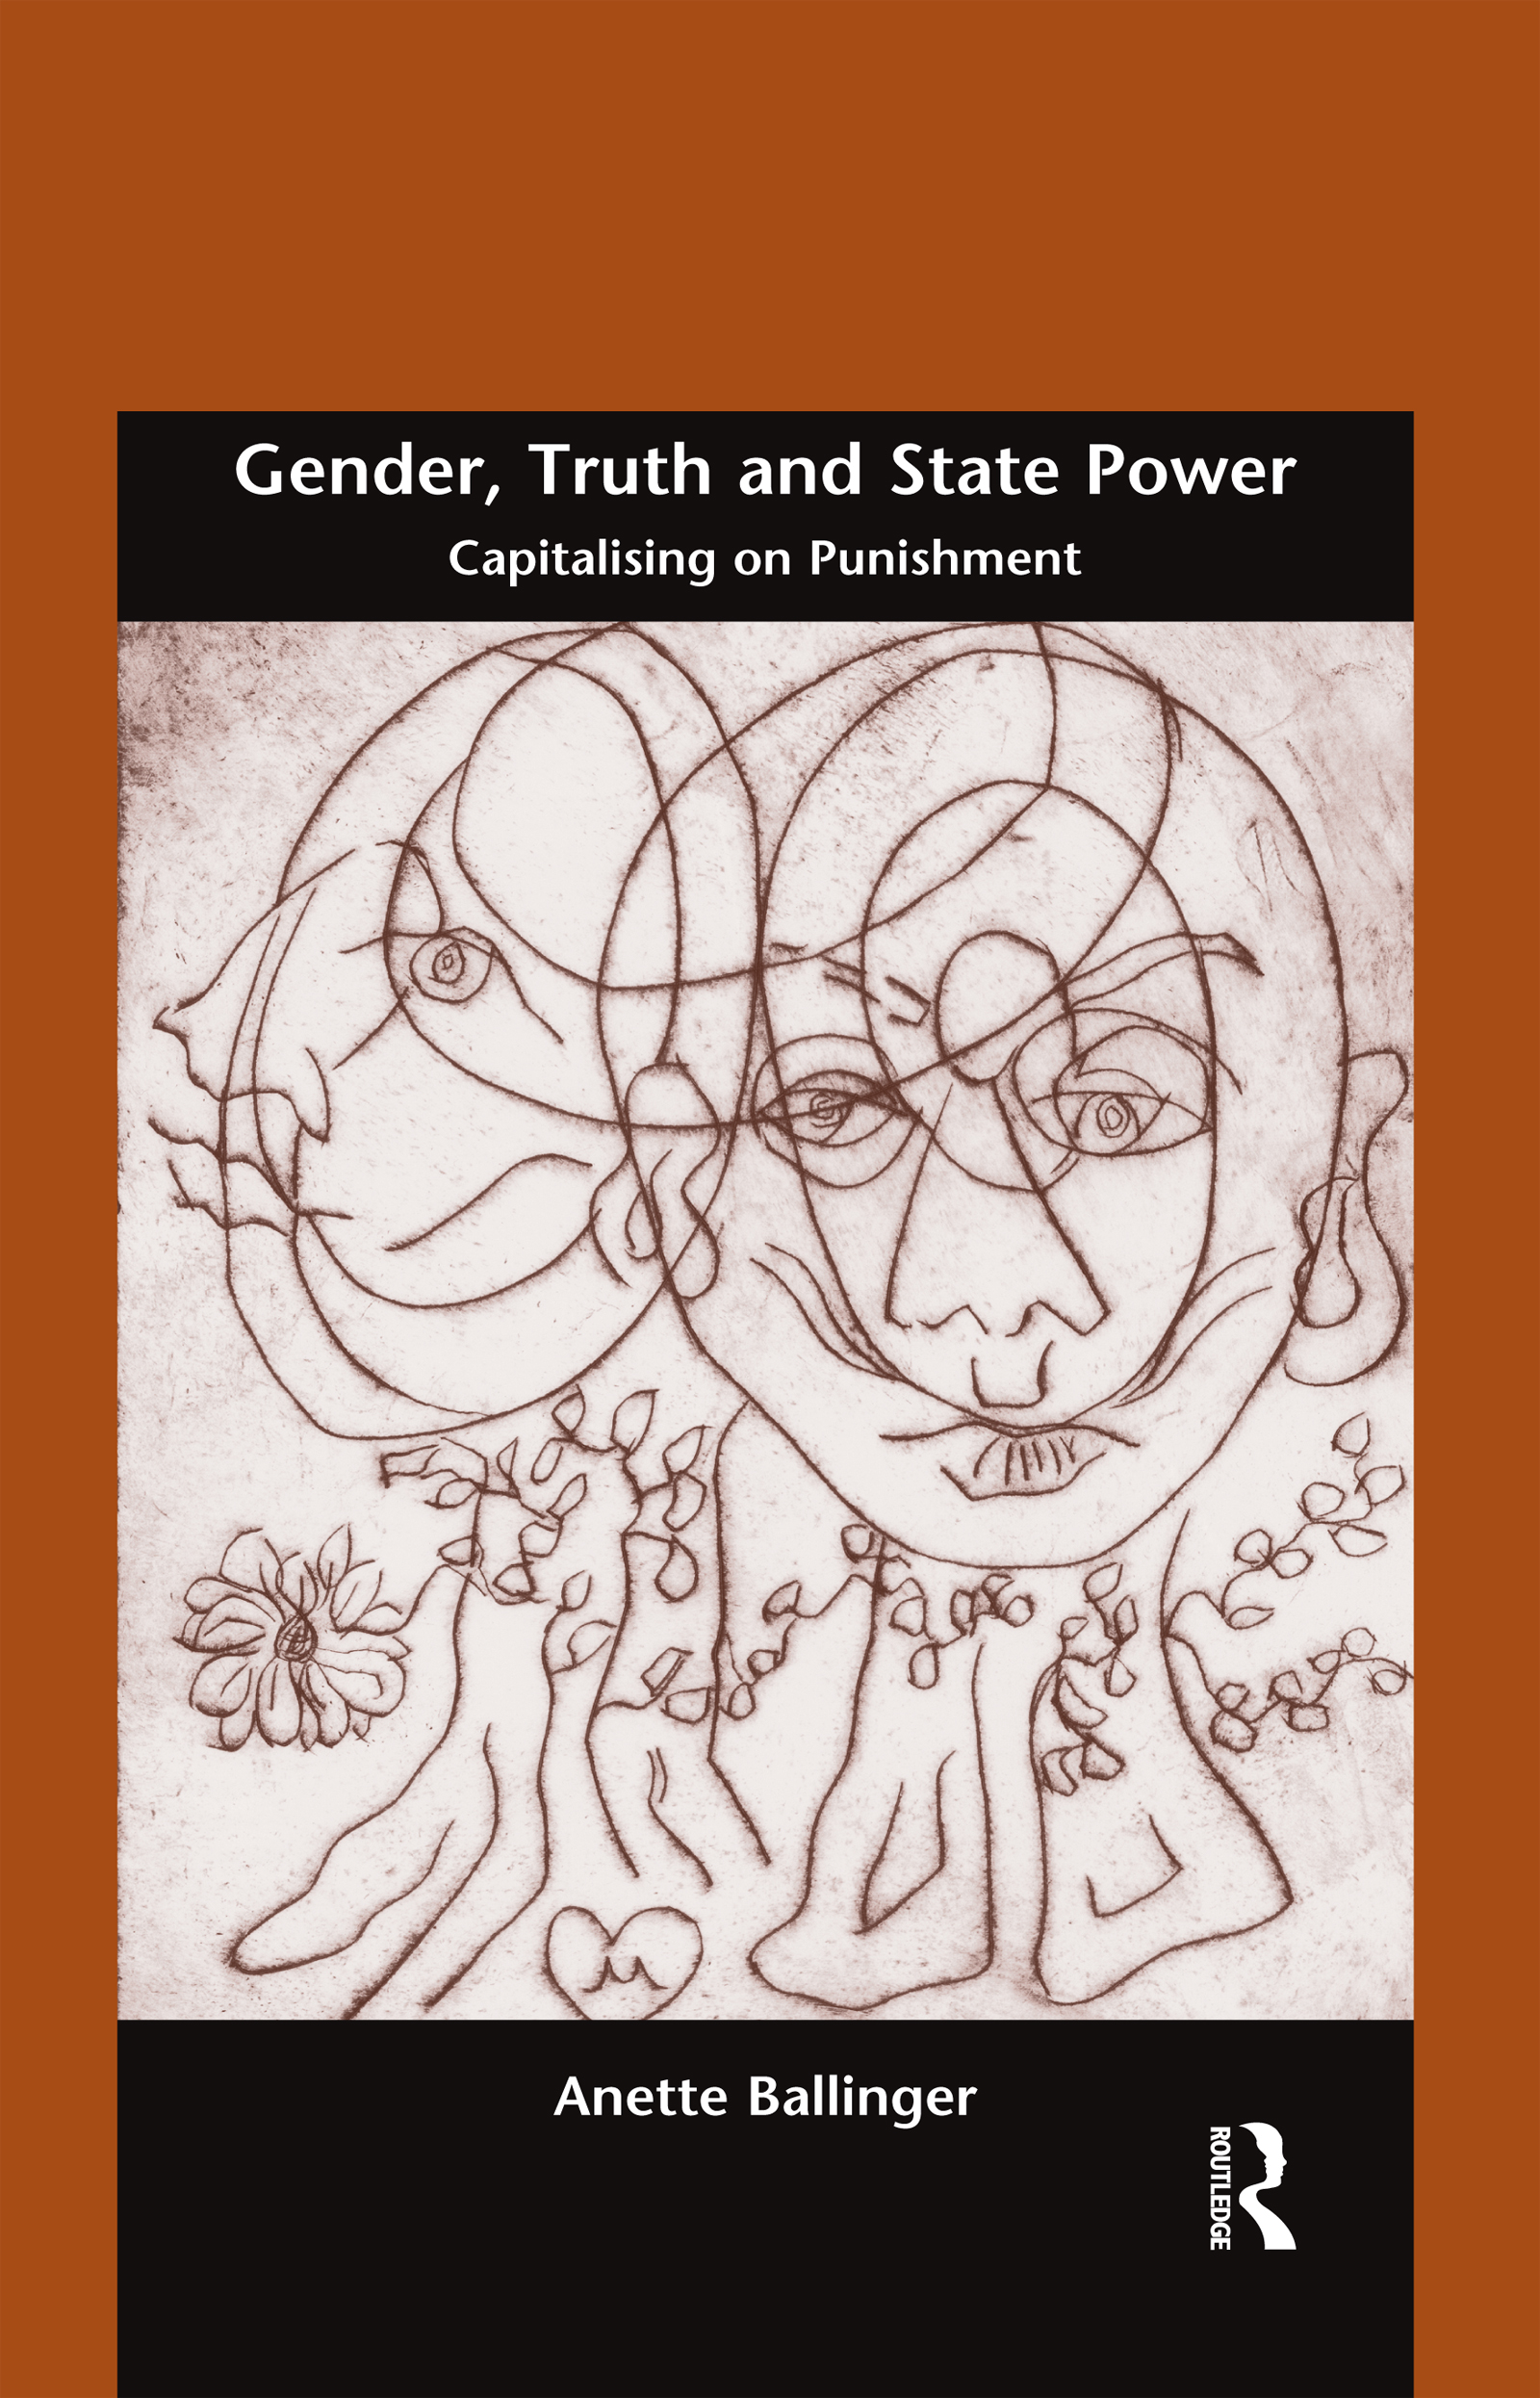 Gender, Truth and State Power